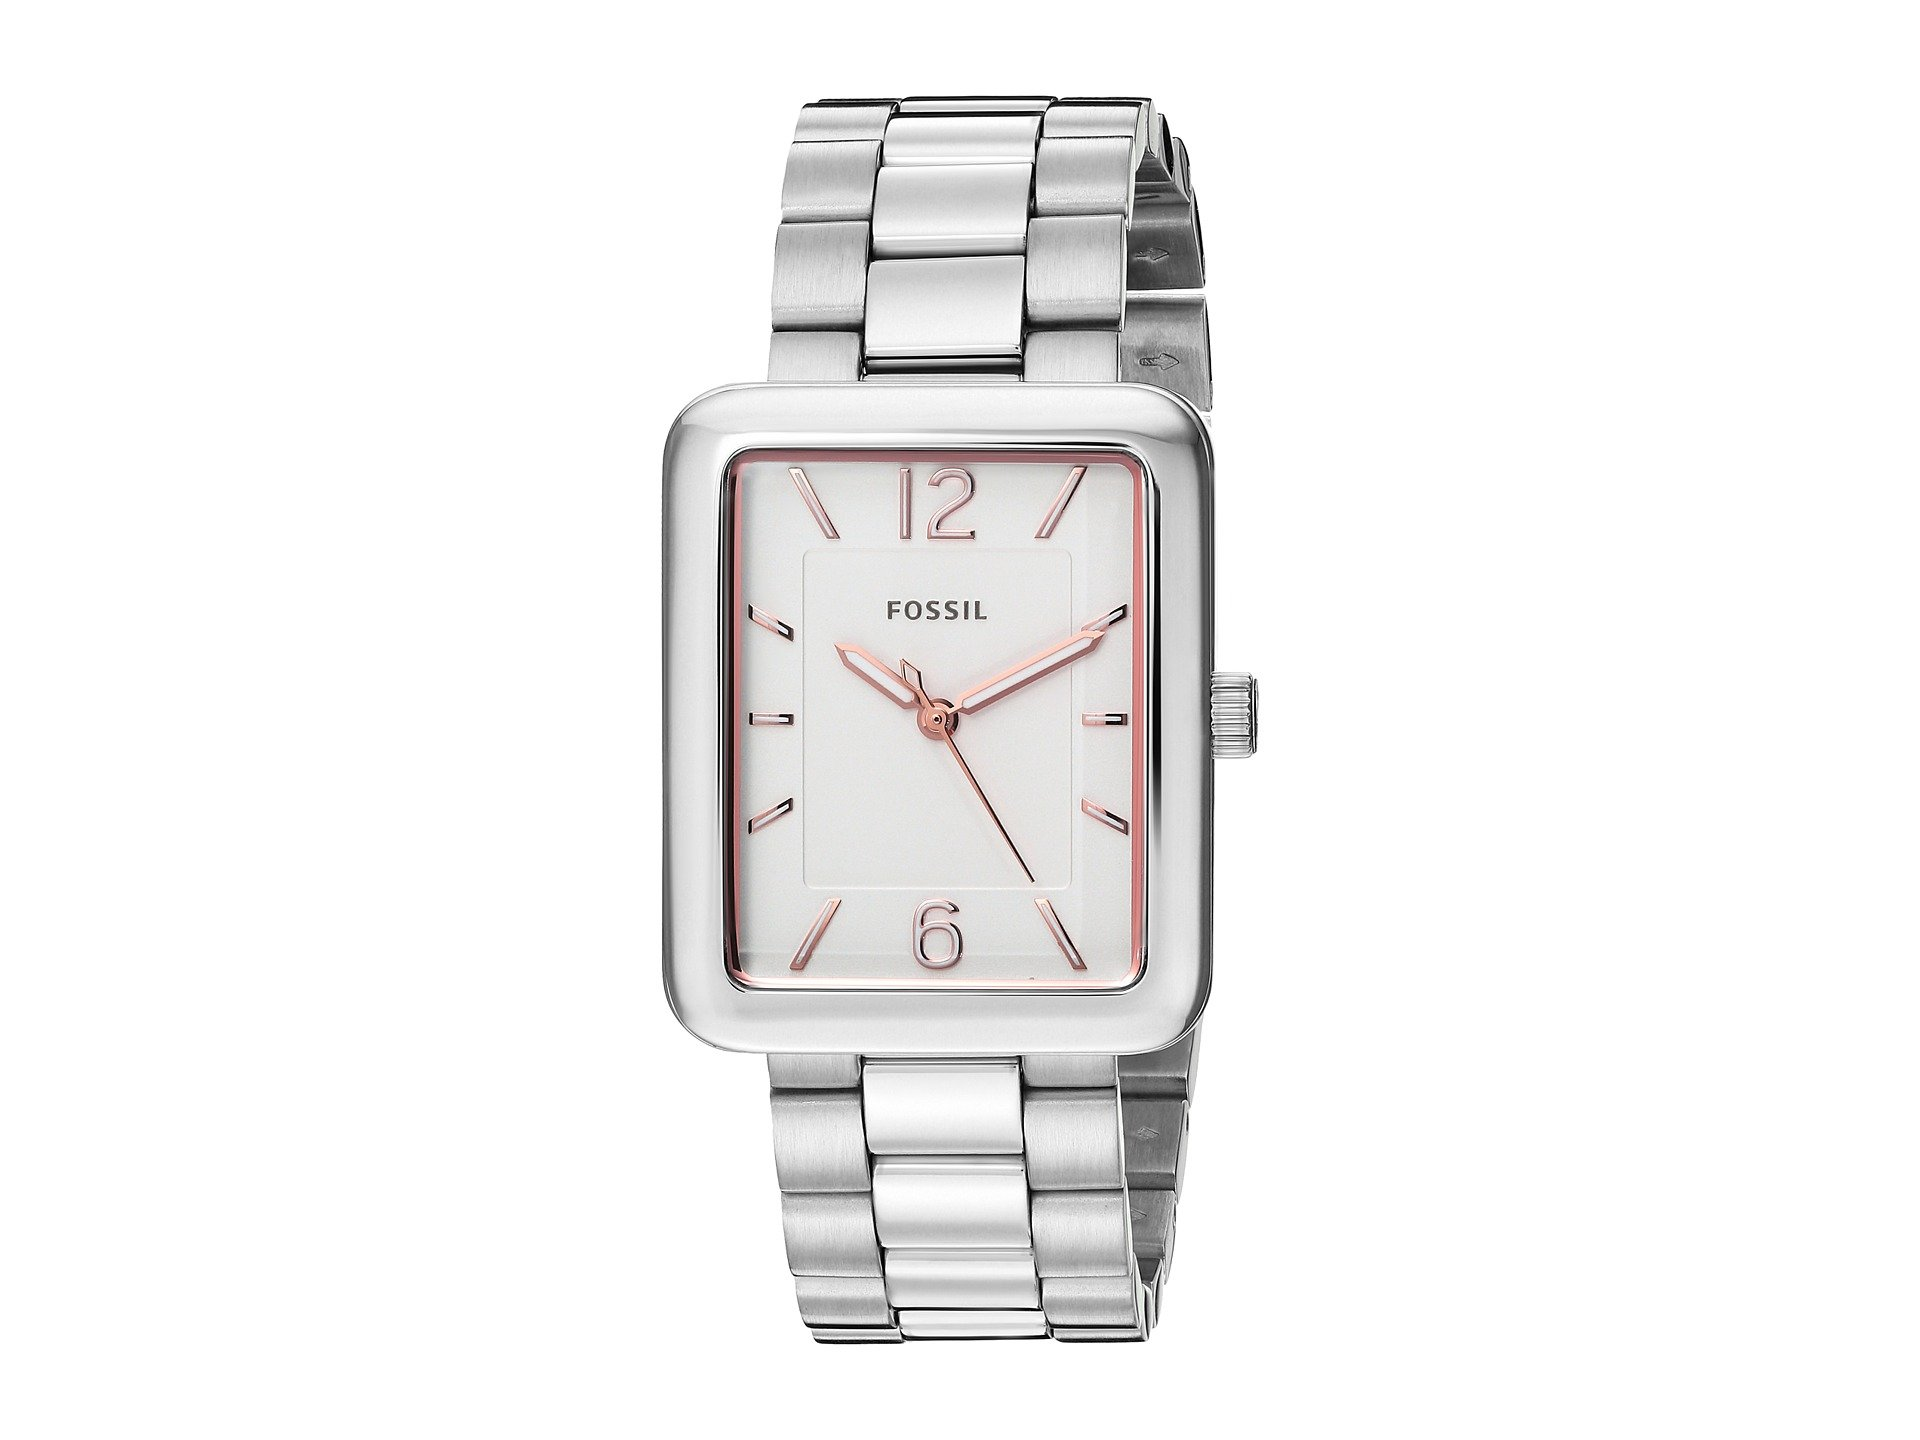 Reloj para Mujer Fossil Atwater - ES4157  + Fossil en VeoyCompro.net